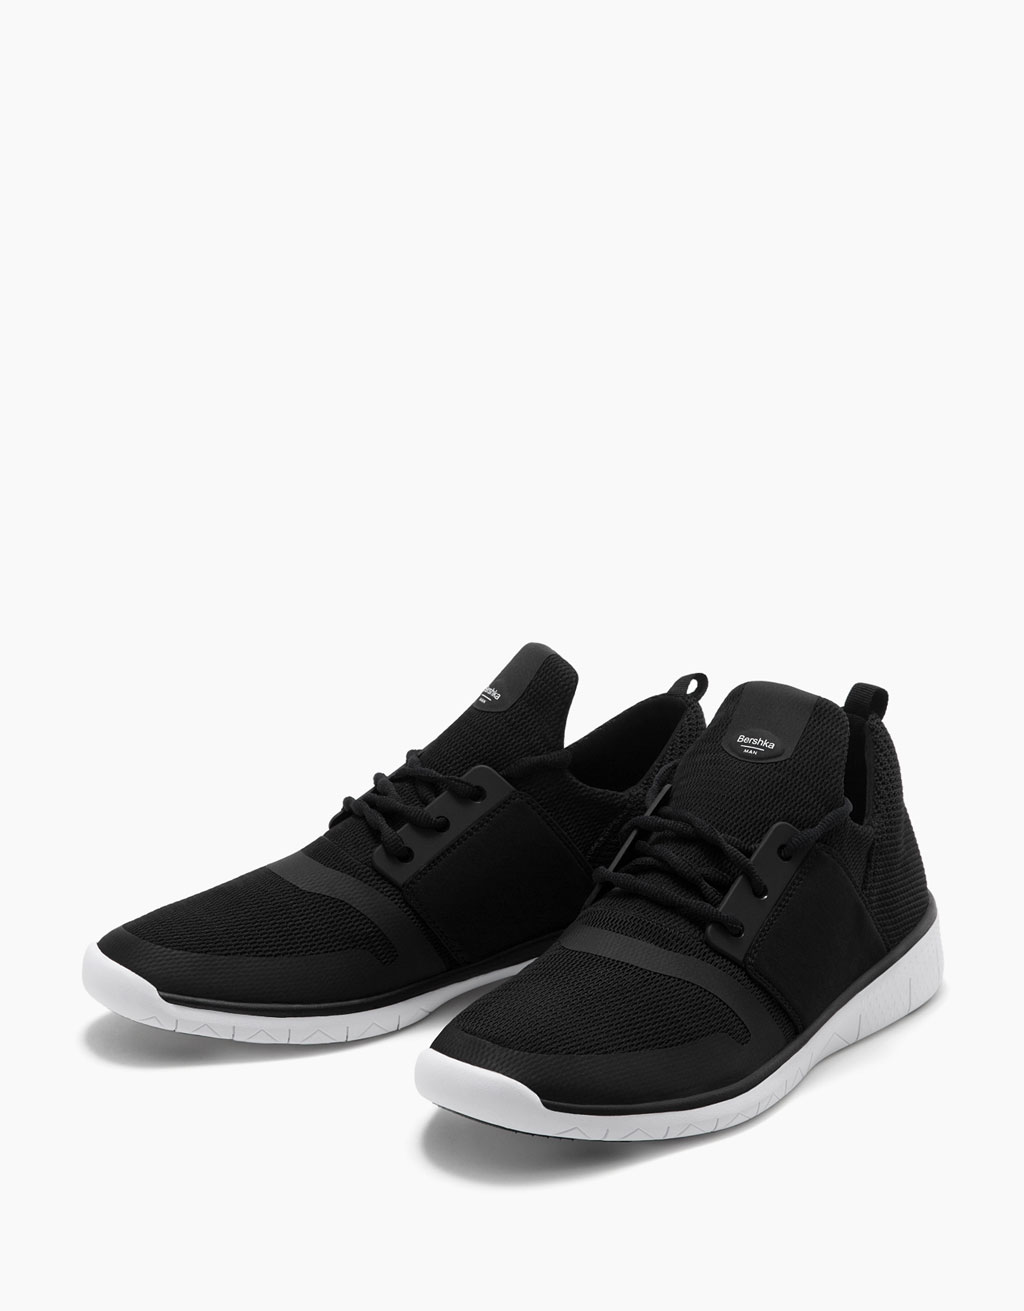 Lace-up sneakers with contrast mesh